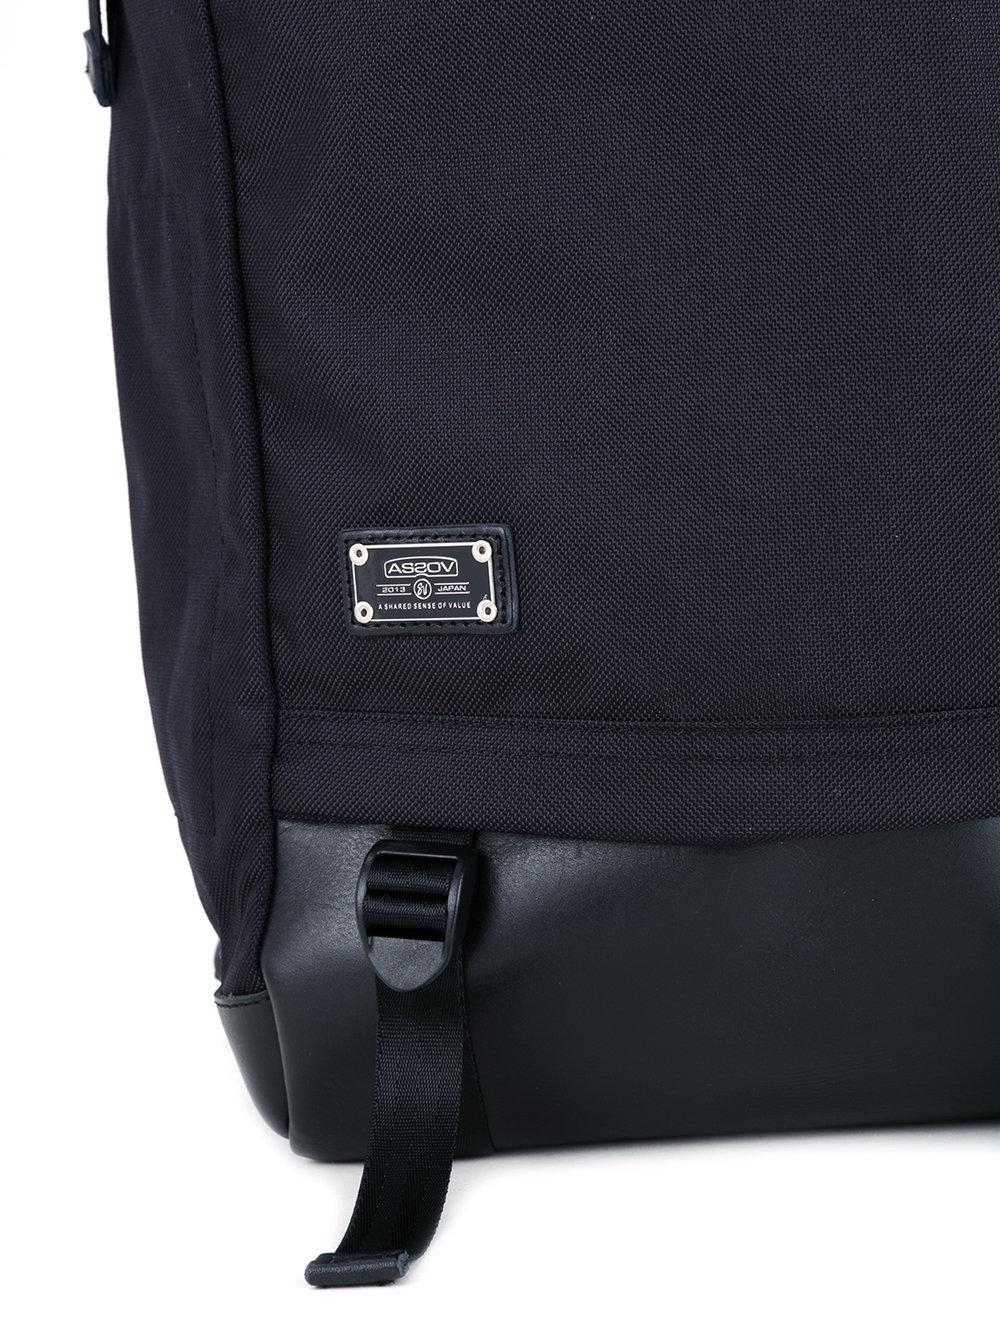 AS2OV Synthetic Ballistic Backpack in Black for Men